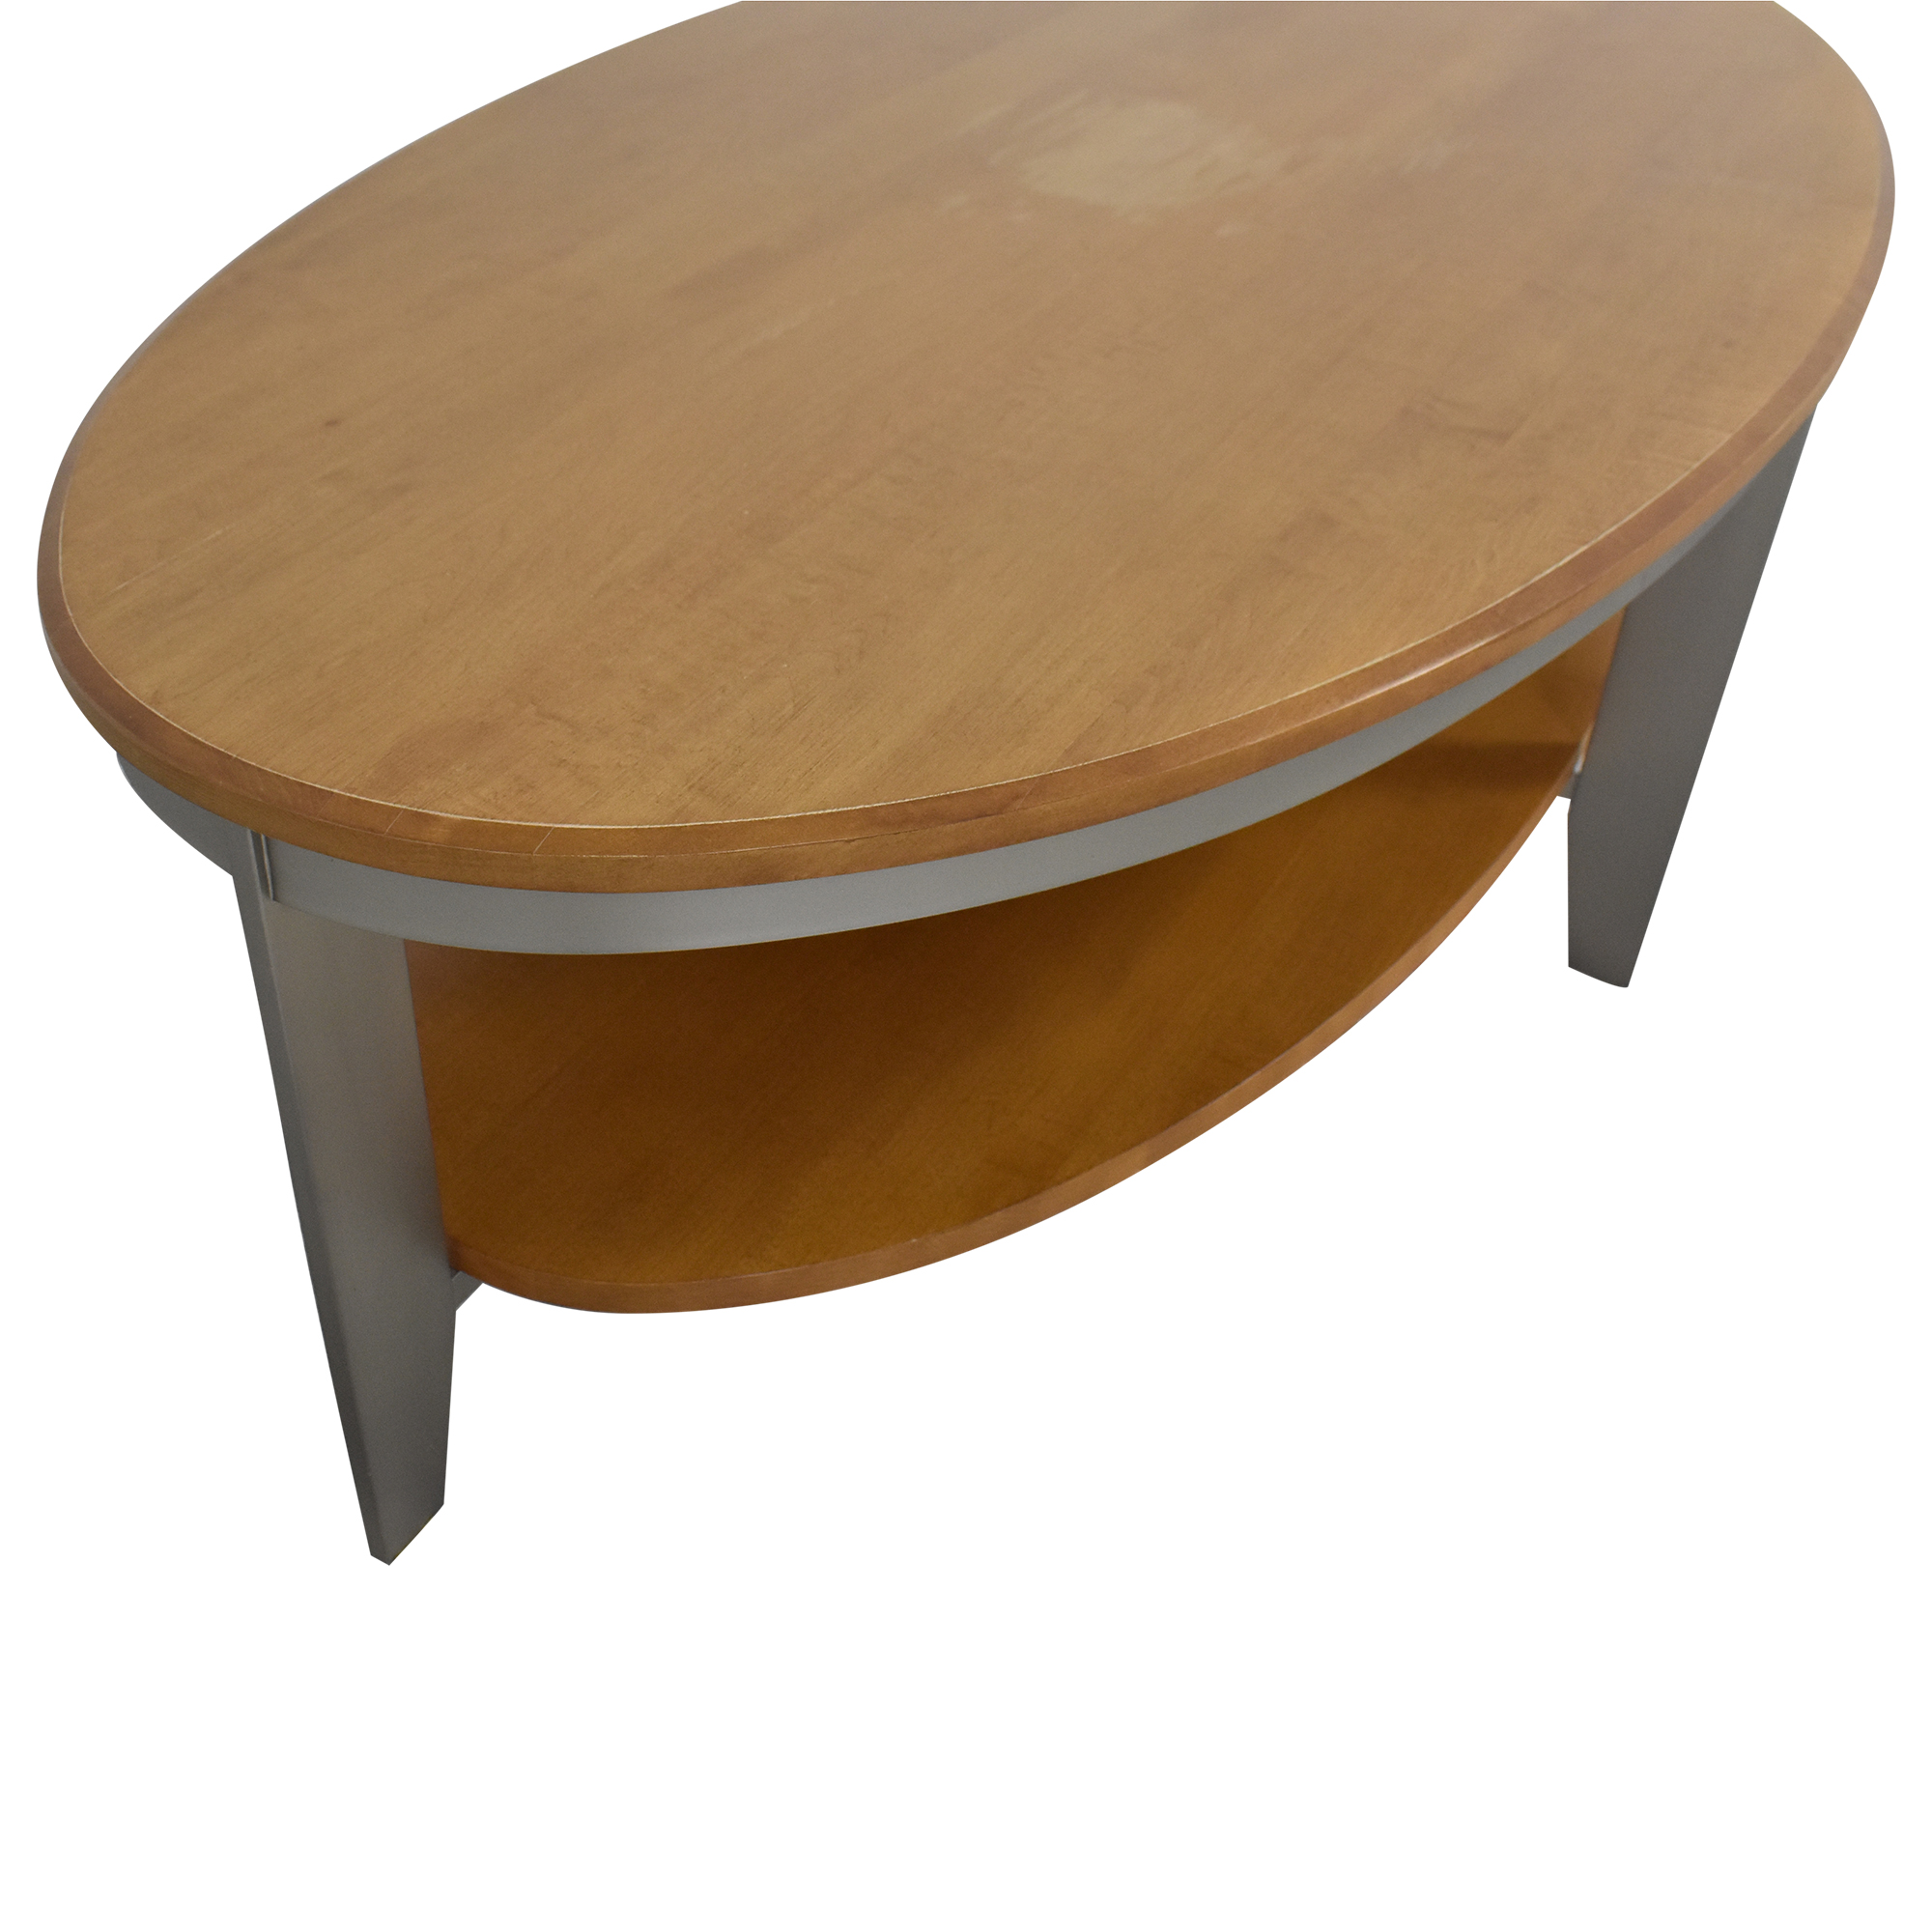 Oval Coffee Table with Shelf used